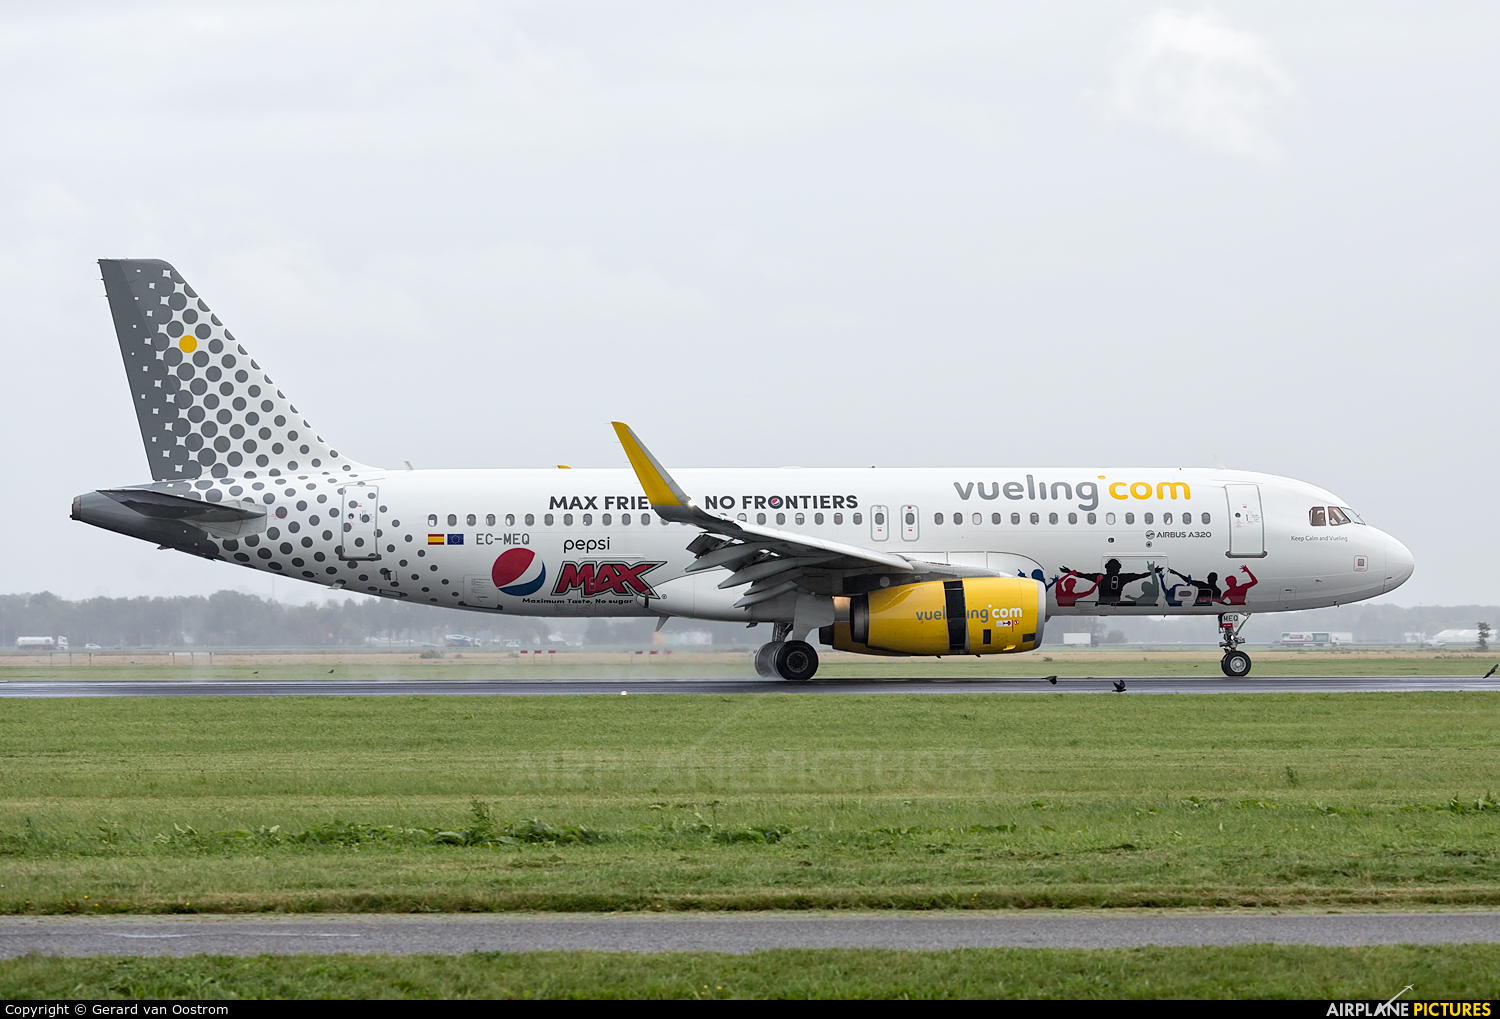 Vueling Airlines EC-MEQ aircraft at Amsterdam - Schiphol